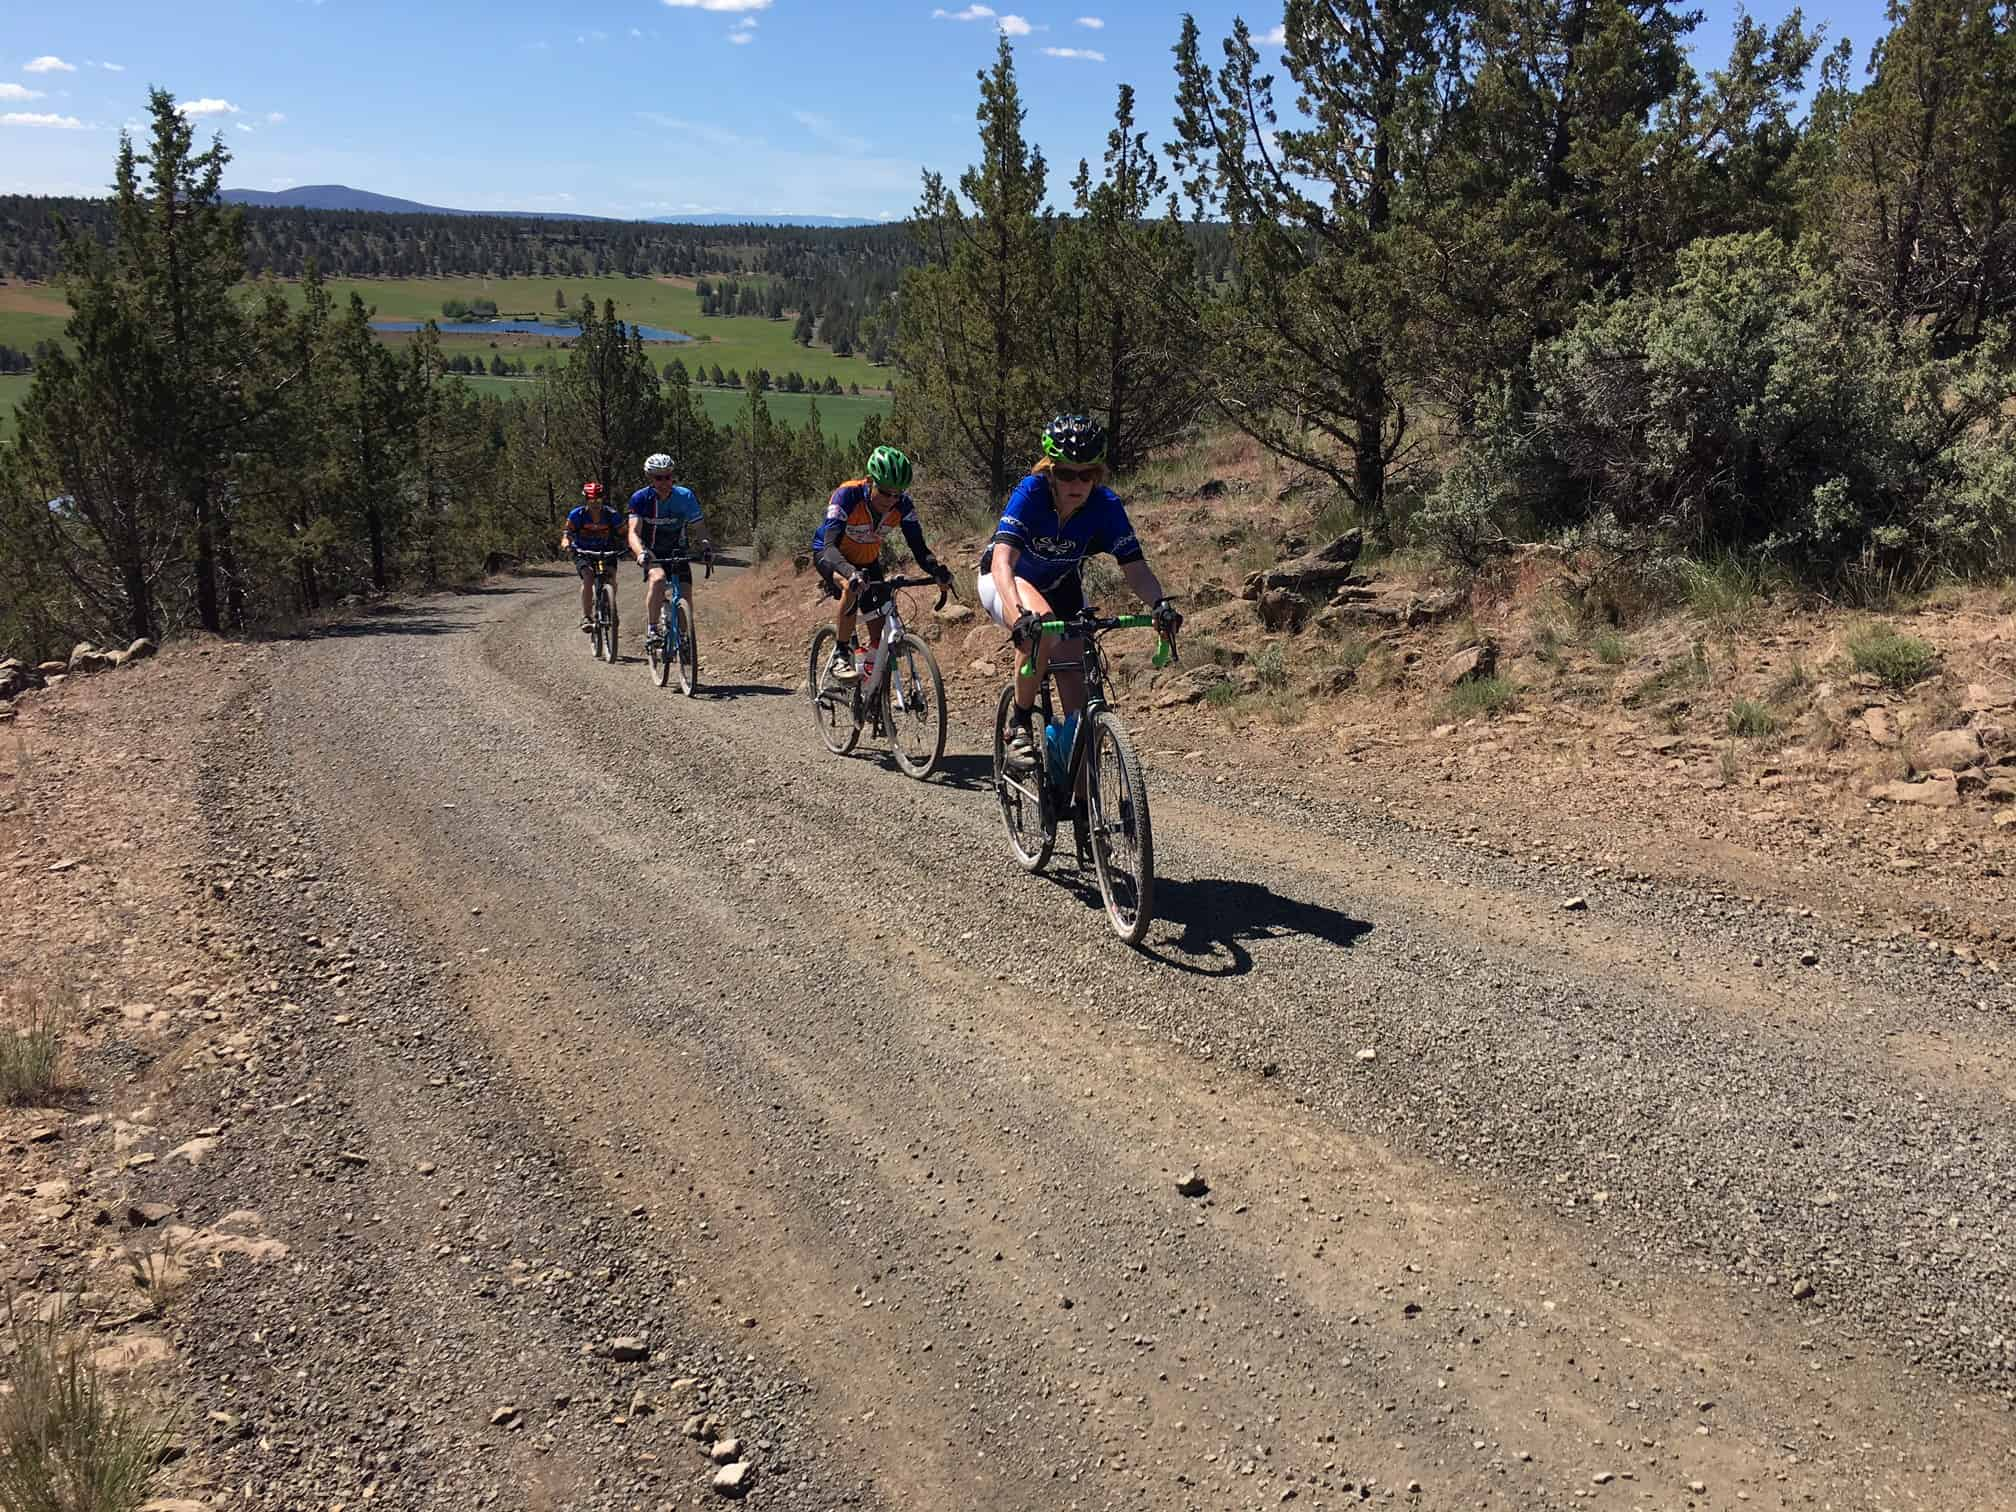 Cyclists on gravel forest road 1393 near Sisters, Oregon